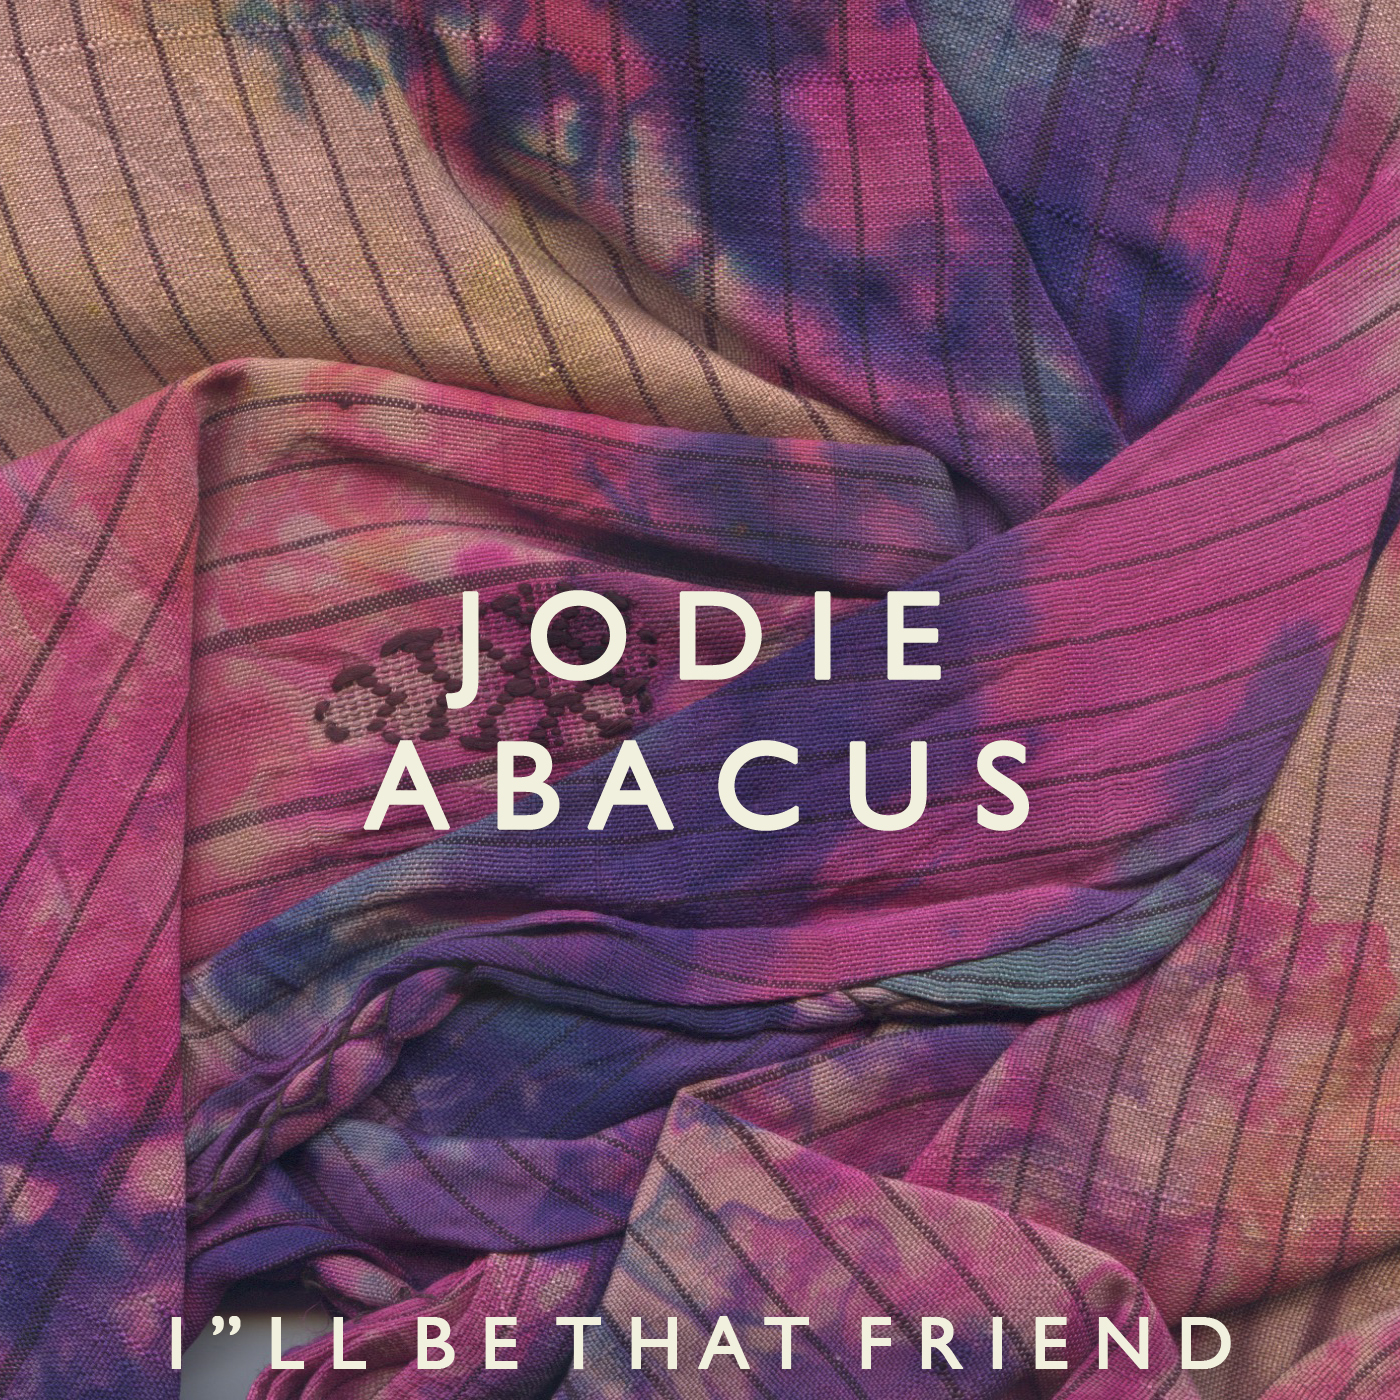 'I'll be that friend' JODIE ABACUS. Artwork by Anna Pesquidous